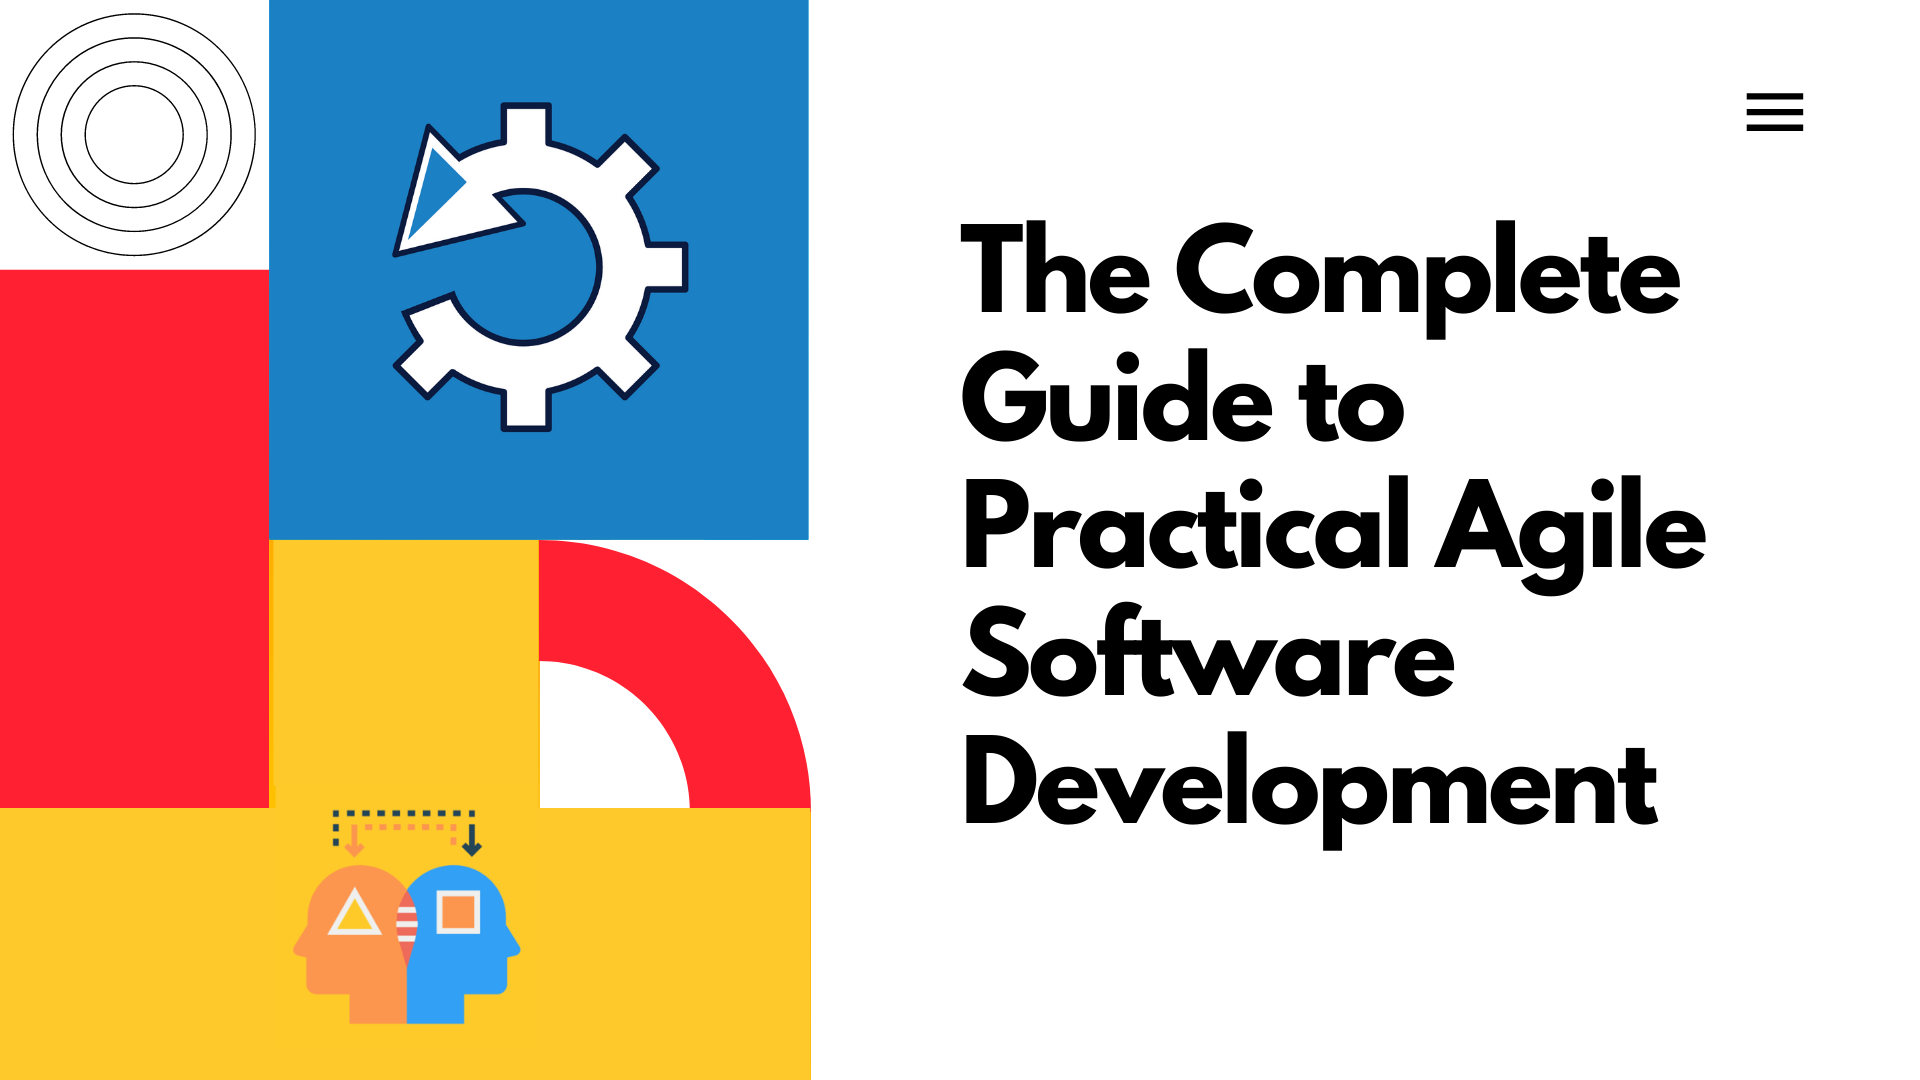 The Complete Guide to Practical Agile Software Development